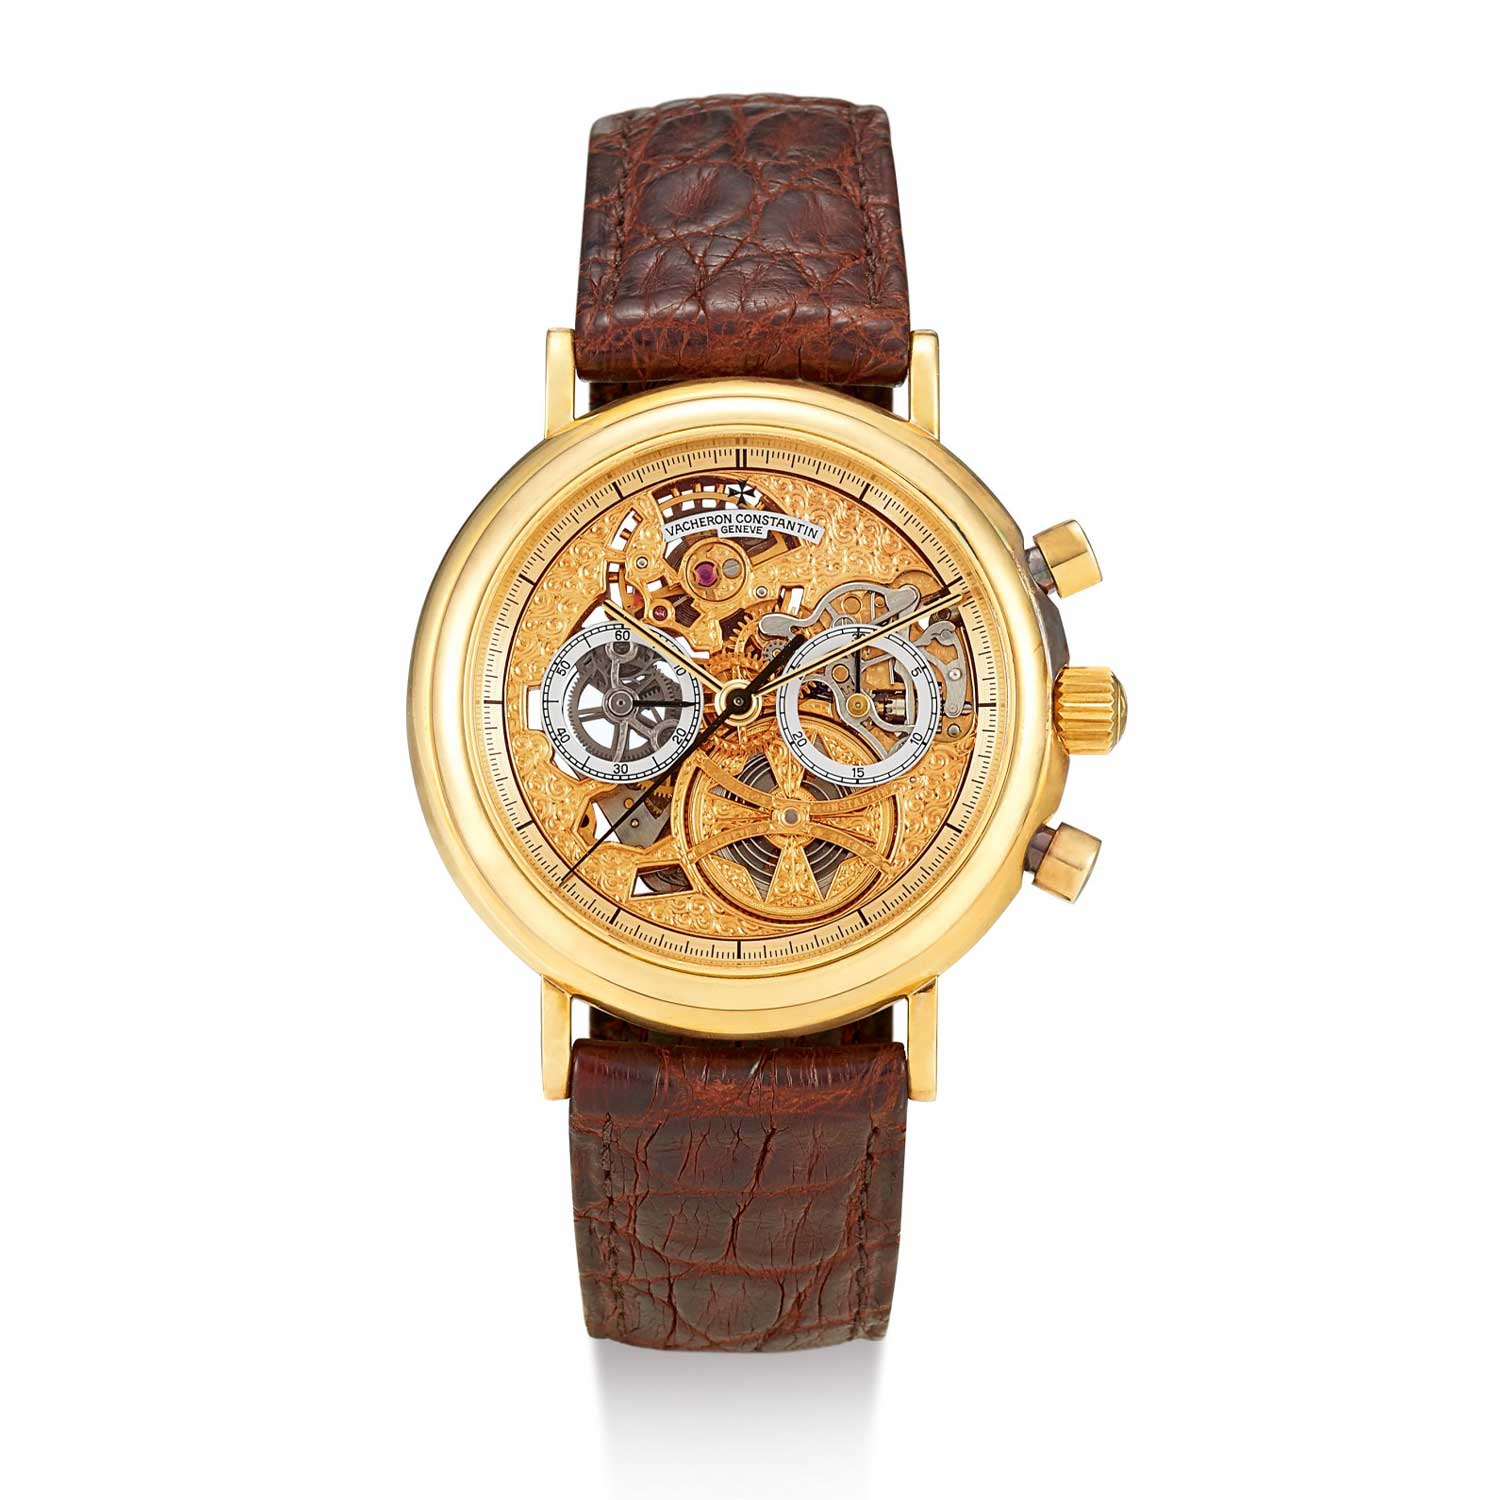 One of the coolest and most stunning executions of the Lemania movement is found in this fully skeletonized Vacheron Constantin Patrimony Chronograph ref. 47100, these are trading in the USD30,000 range, making them a bargain to me (Image: Sothebys.com)